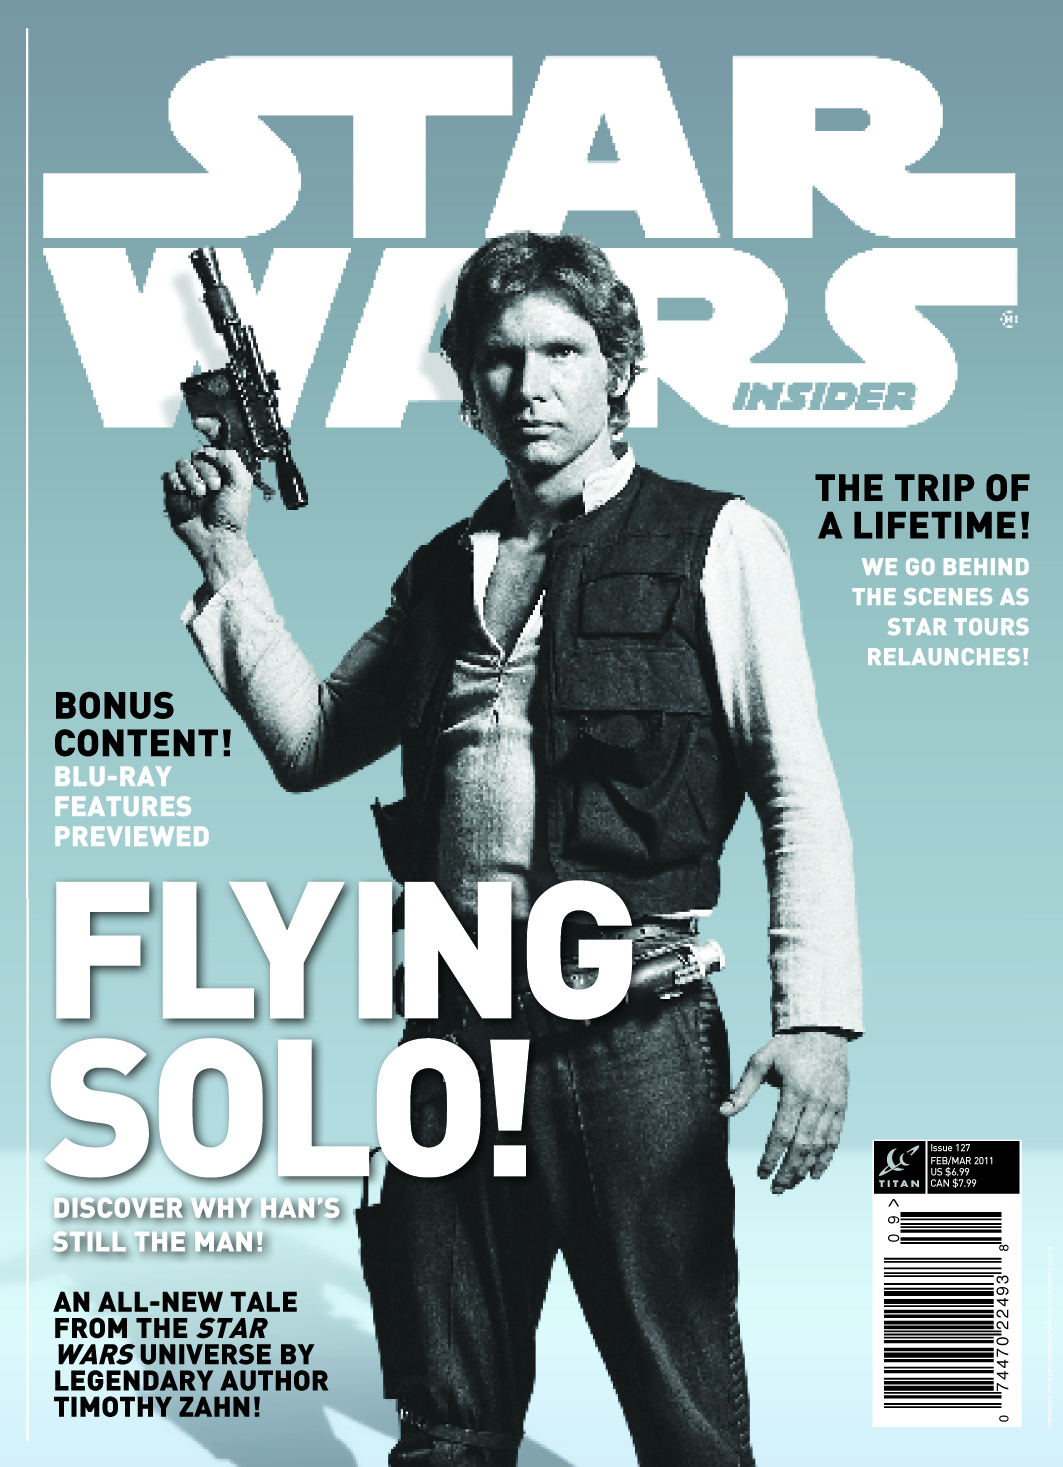 STAR WARS INSIDER #127 SPECIAL NEWSSTAND ED